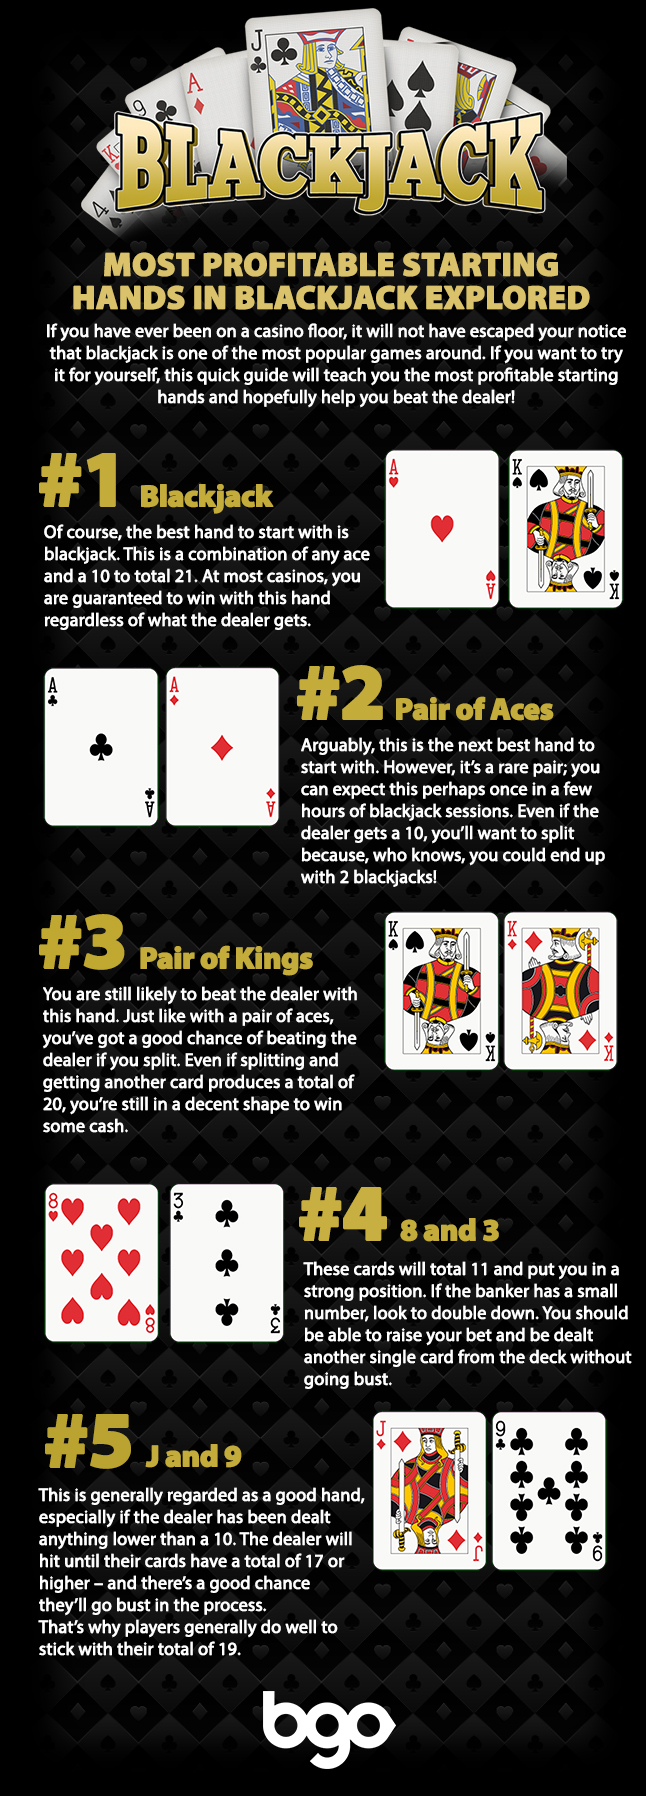 Poker sites that accept paypal in canada